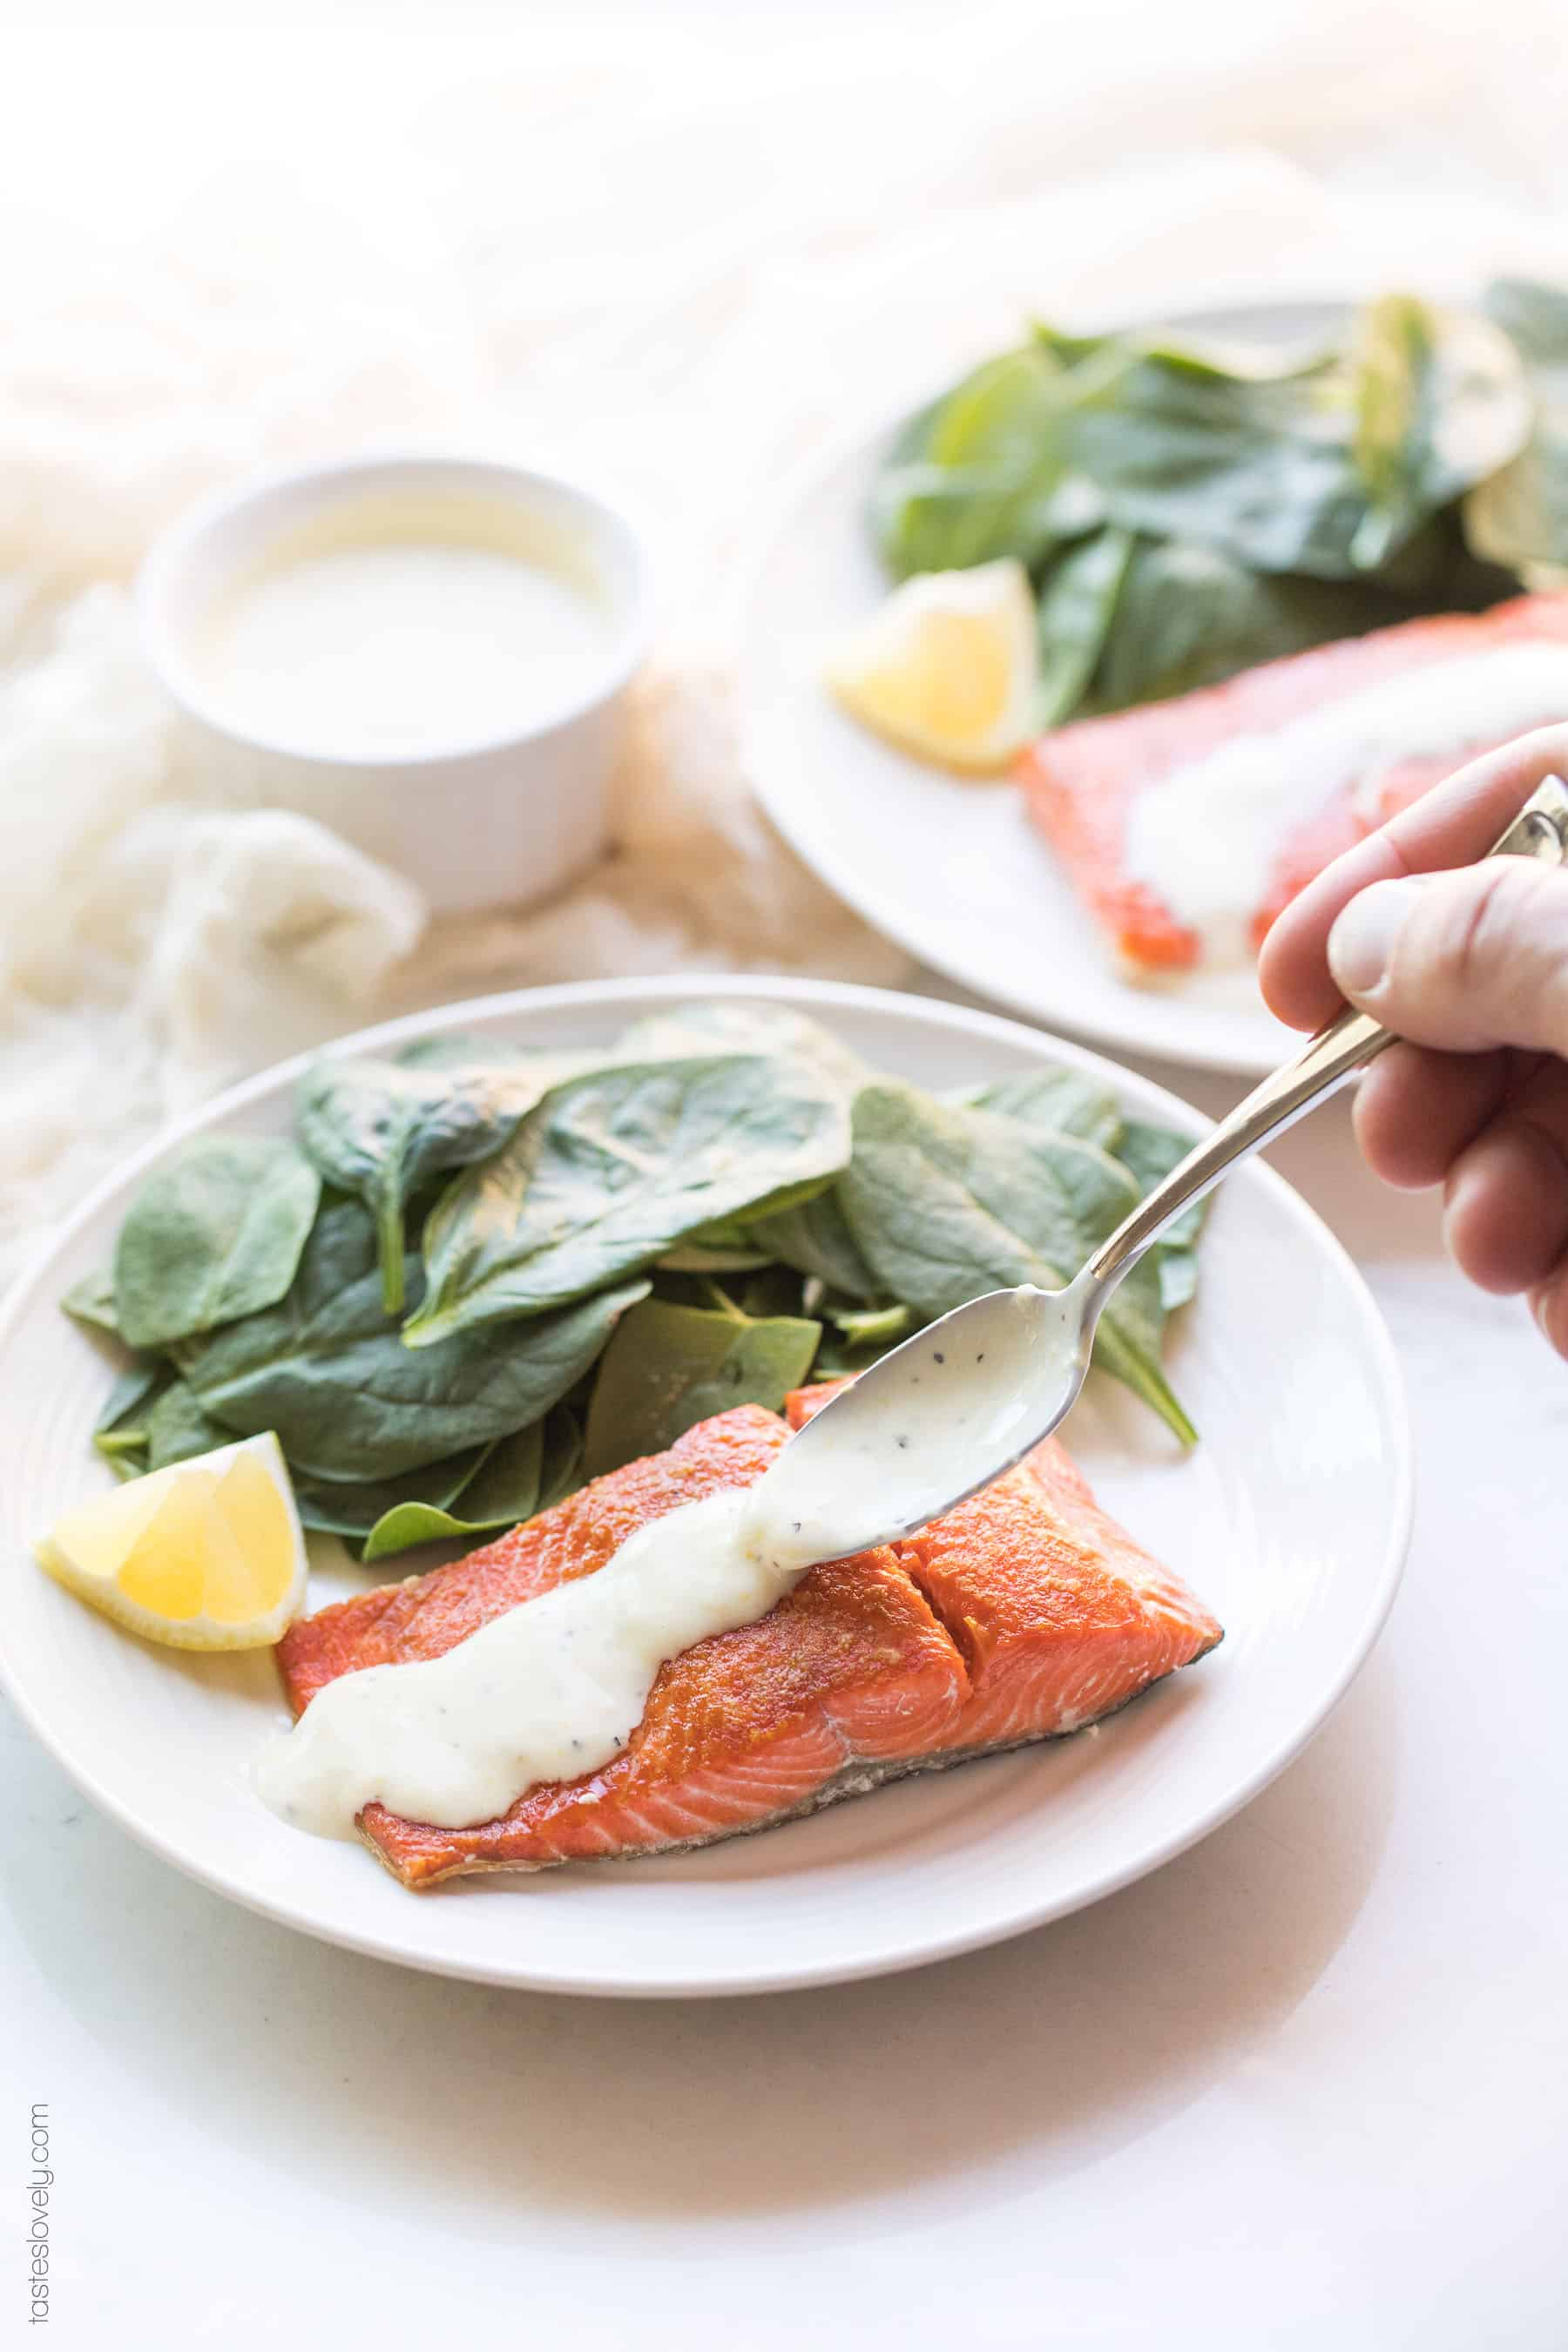 Pouring lemon garlic aioli over salmon on a plate with spinach